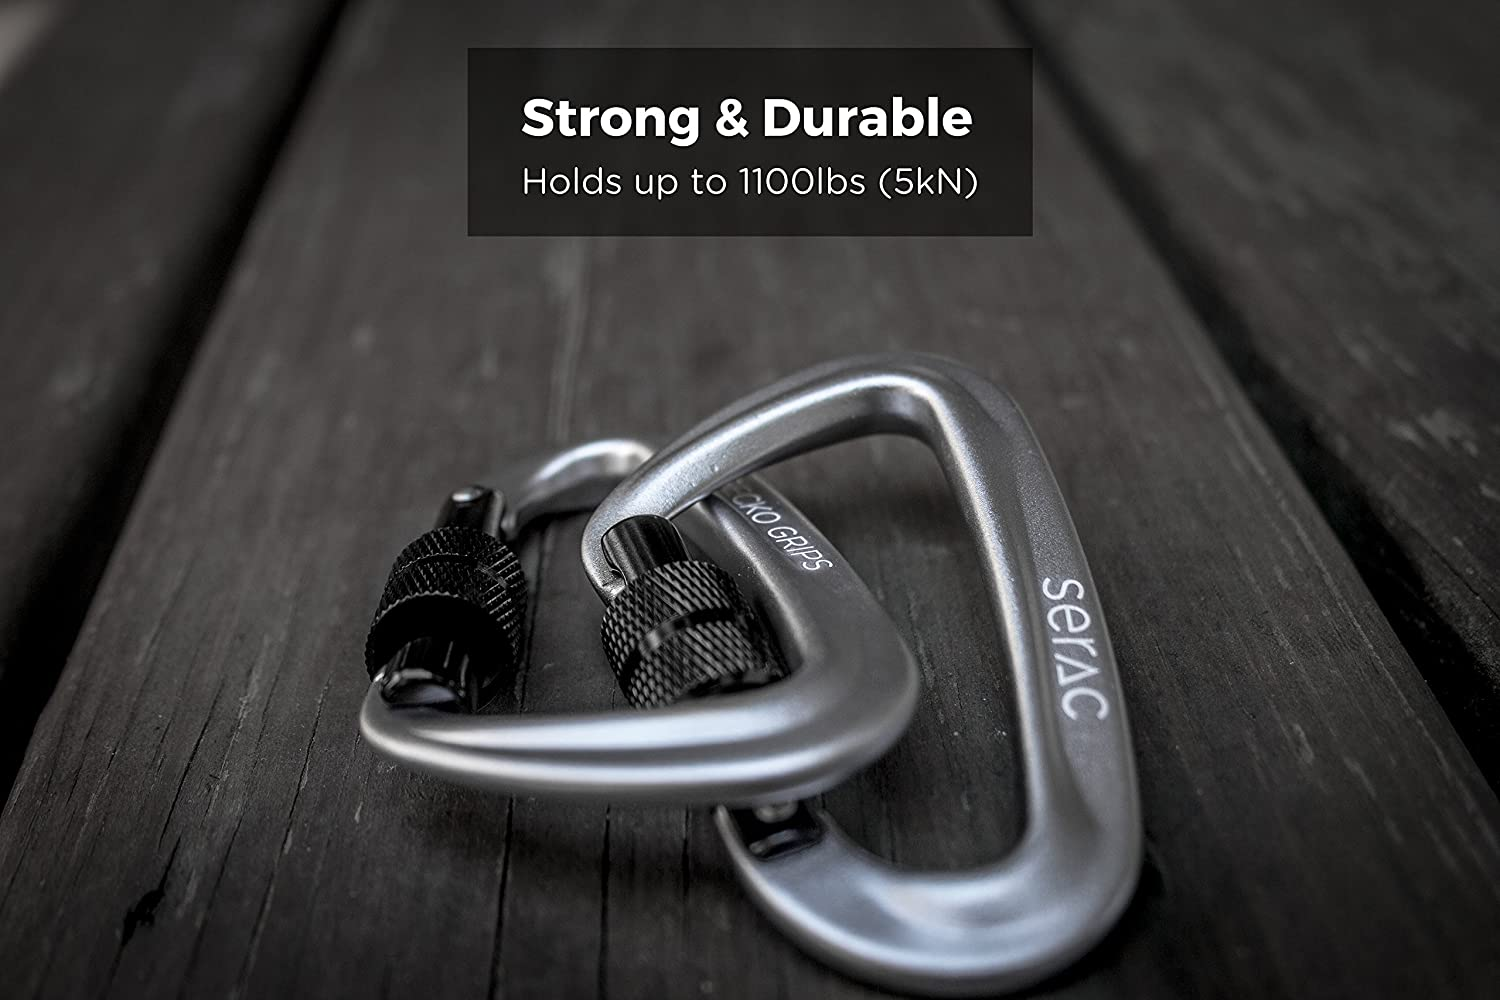 Serac 1 Ultra Strength Locking Carabiners X2 Up To Techstrong Basic Electronics Project4 Simple Electronic Code Lock 5kn Thats 1100 Lbs Of Force Perfect Classic Single Or Sequoia Double Hammocks Made